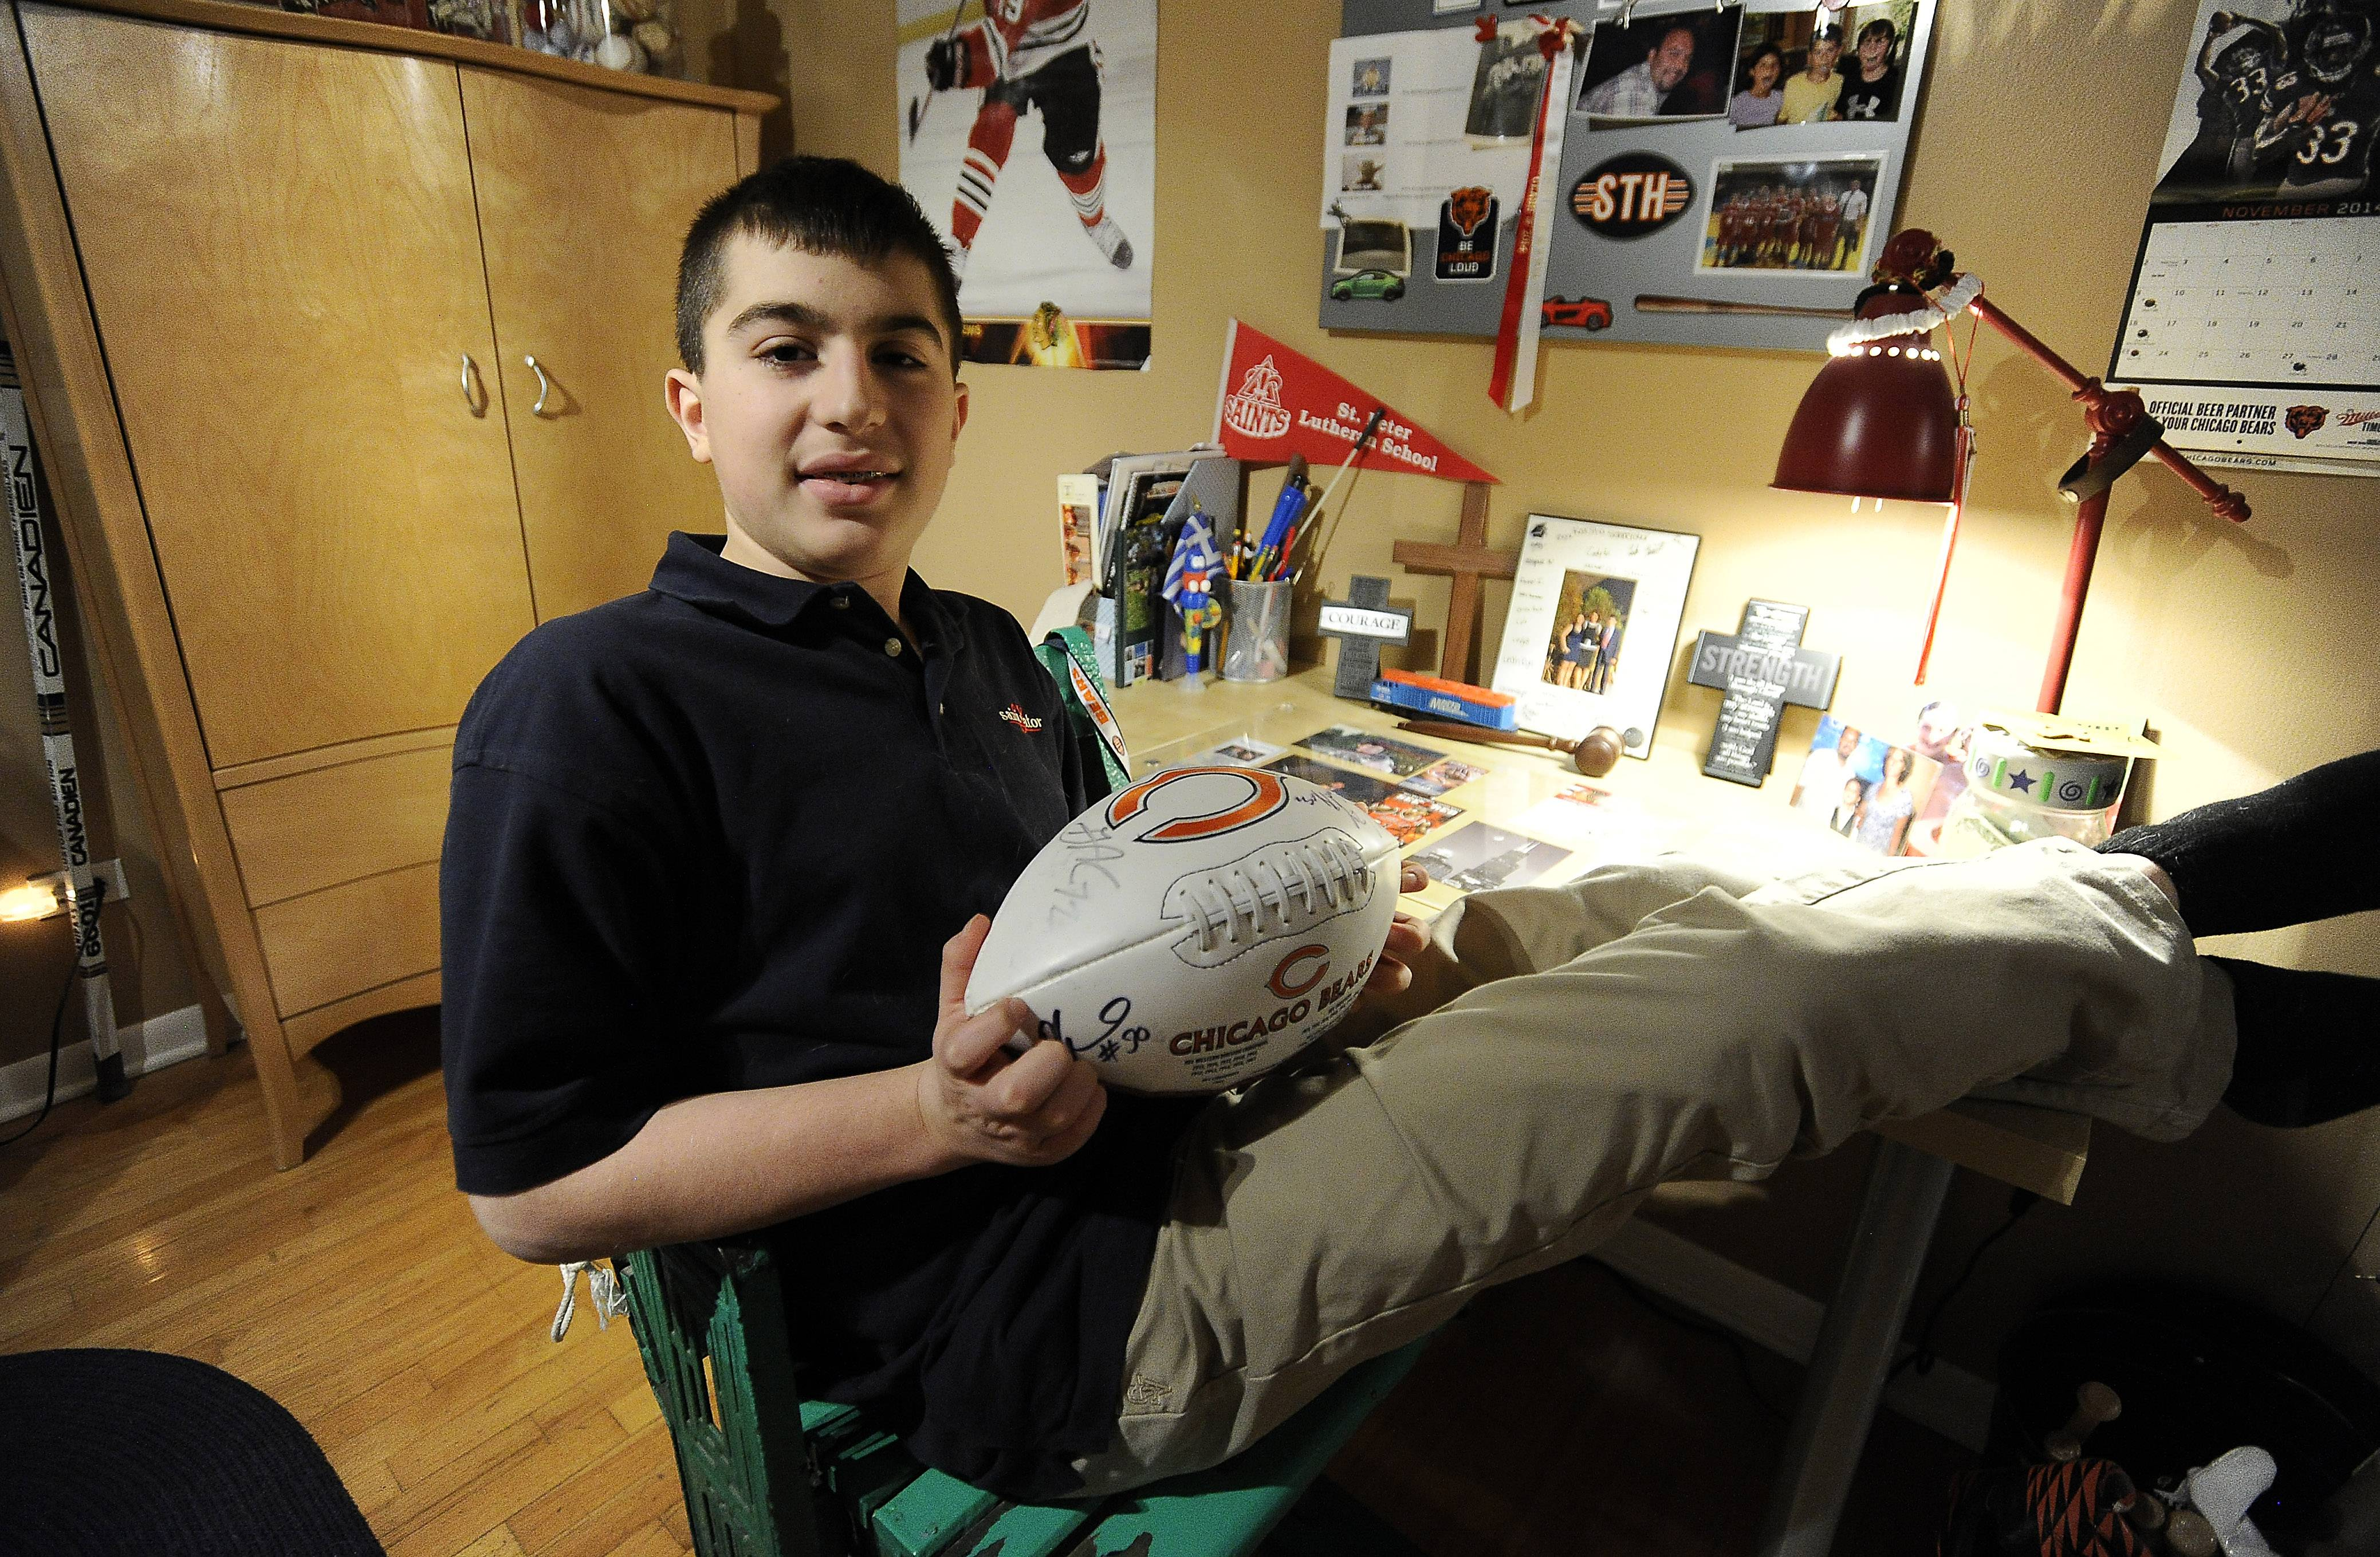 A huge fan of the Bears and every other Chicago team (except the Cubs), Daniel Isufi of Arlington Heights shows off some of his sports memorabilia. The Bears and Make-A-Wish are treating the 14-year-old to today's Bears game at Soldier Field.